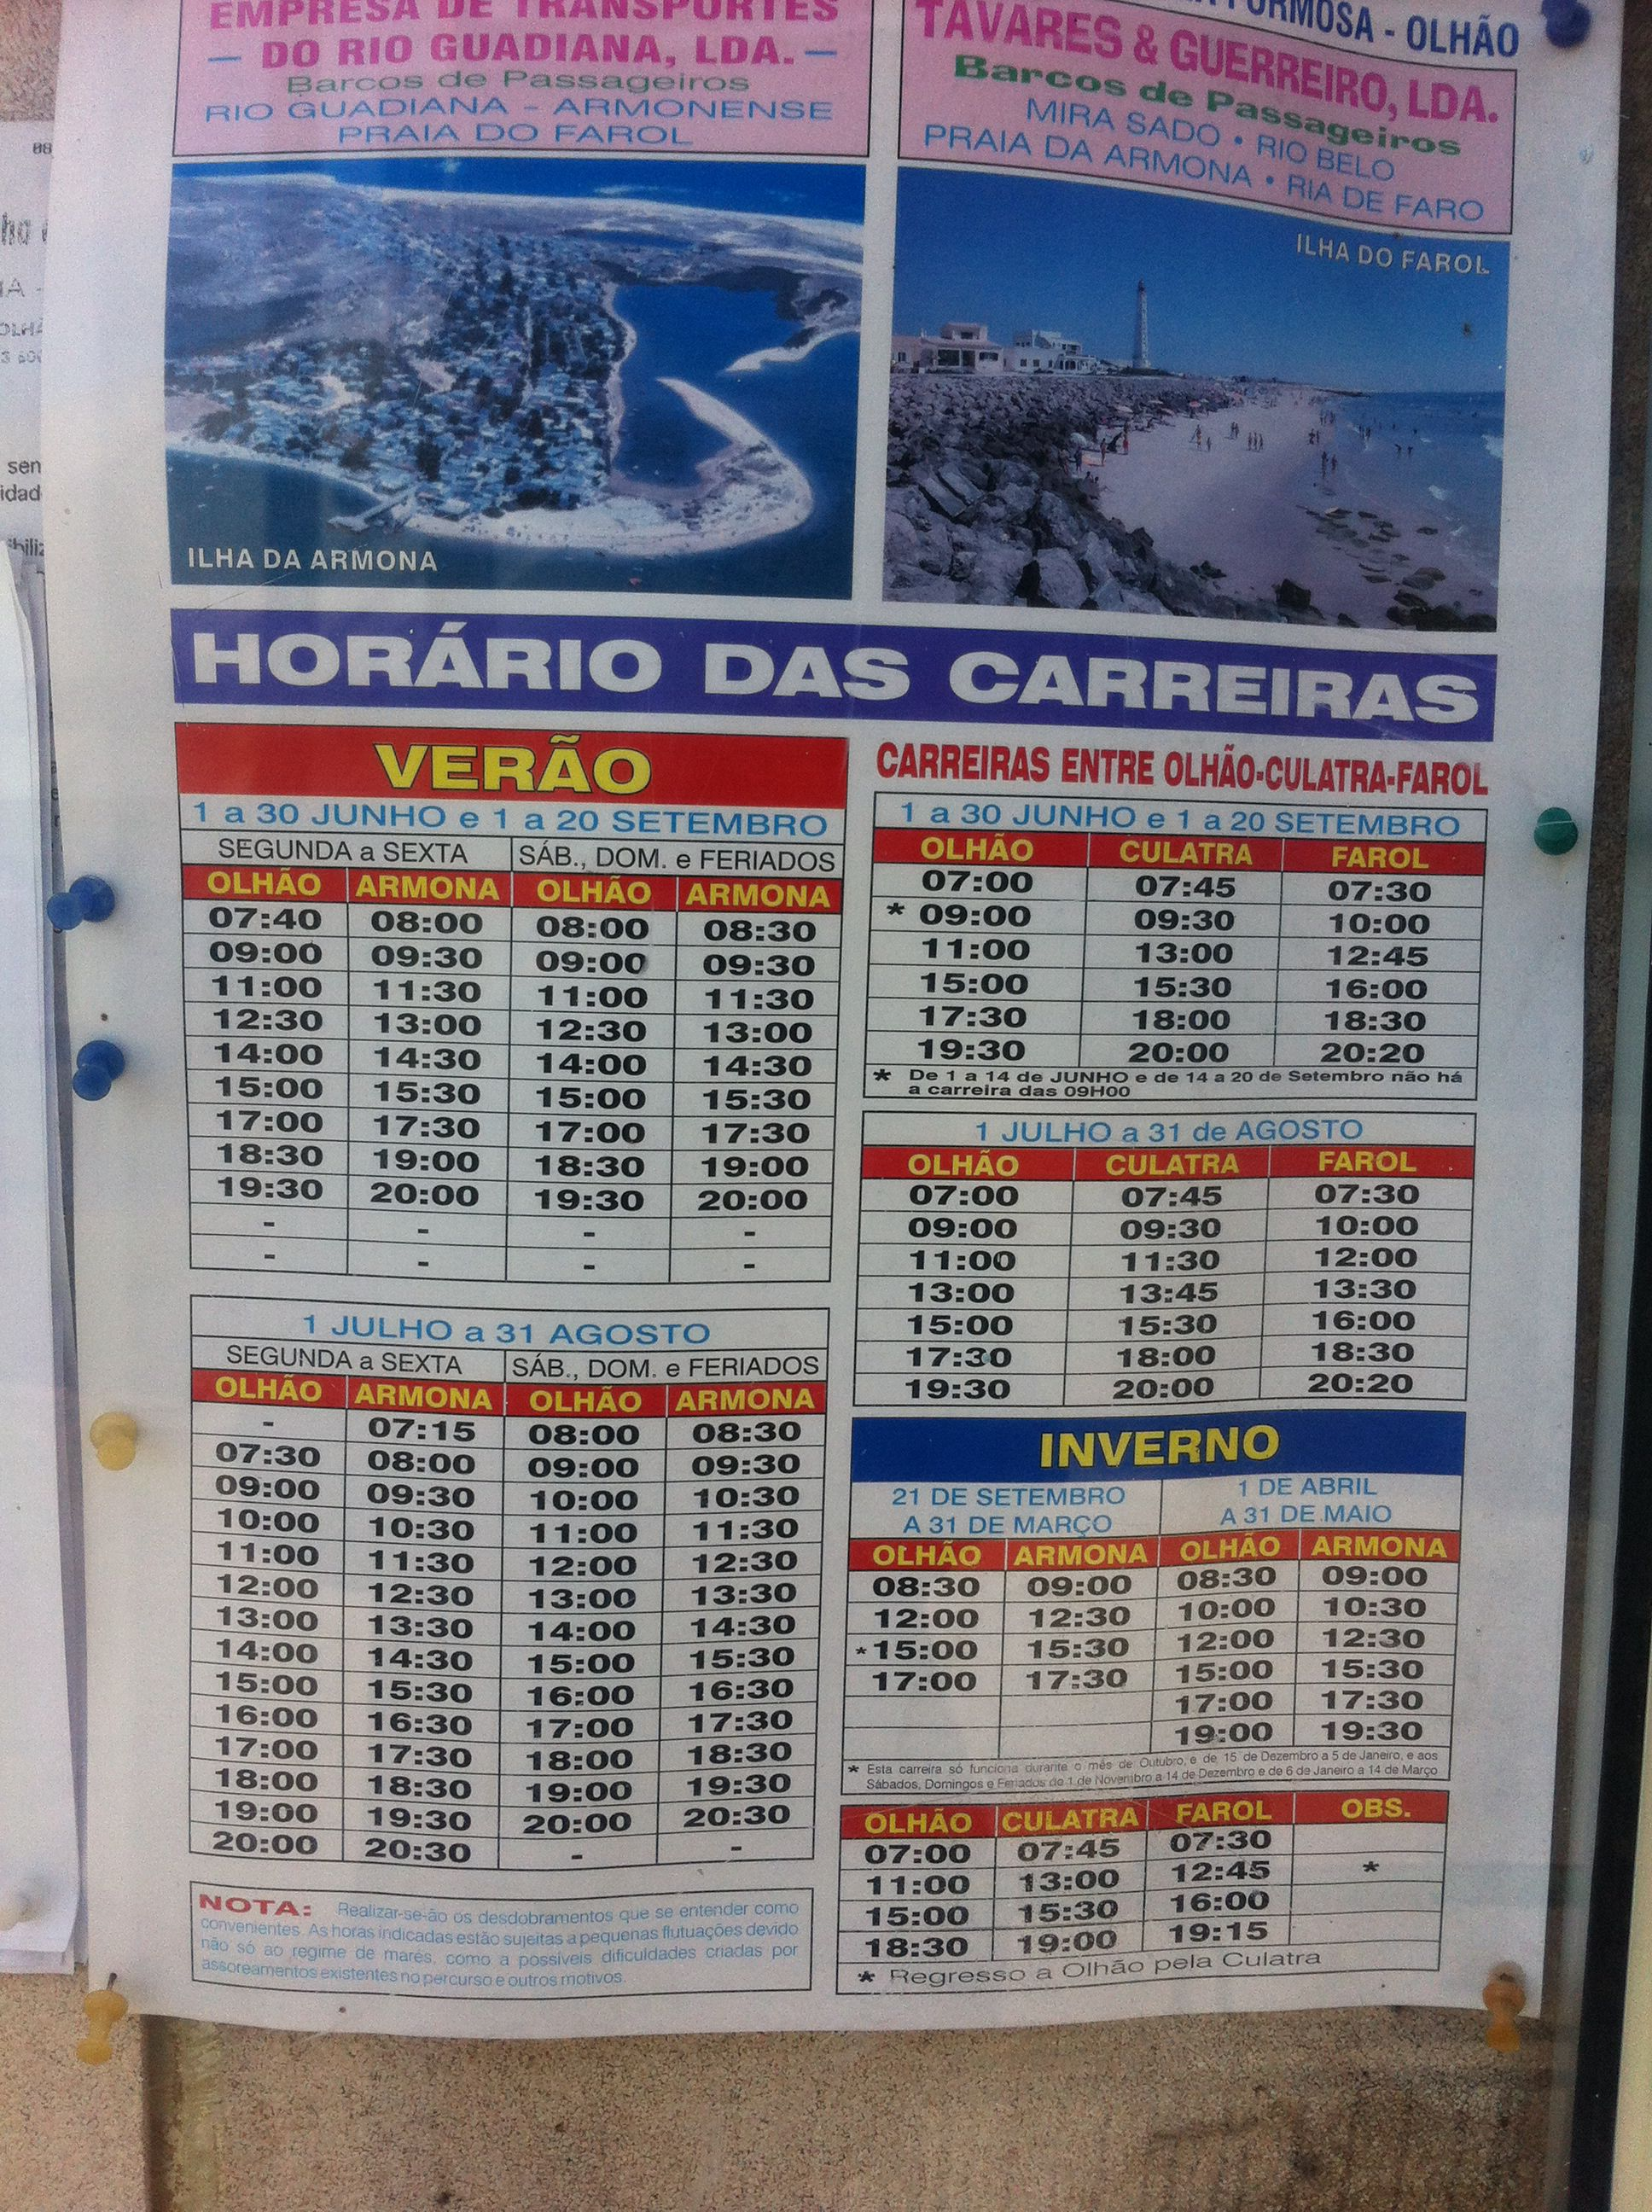 Olhao - the ferry timetable to Armona and Culatra